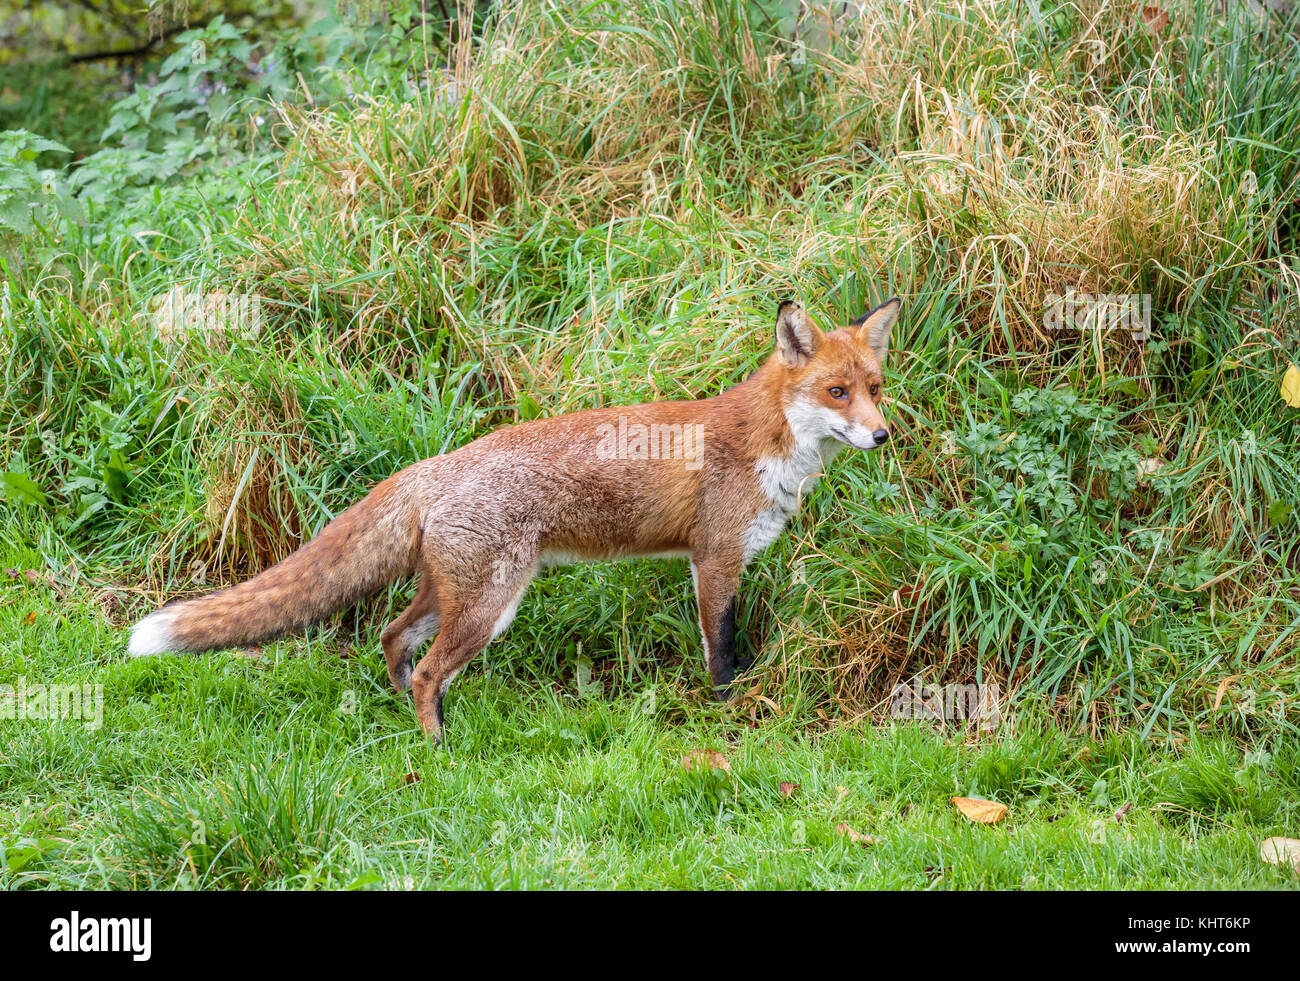 A Red fox - Stock Image